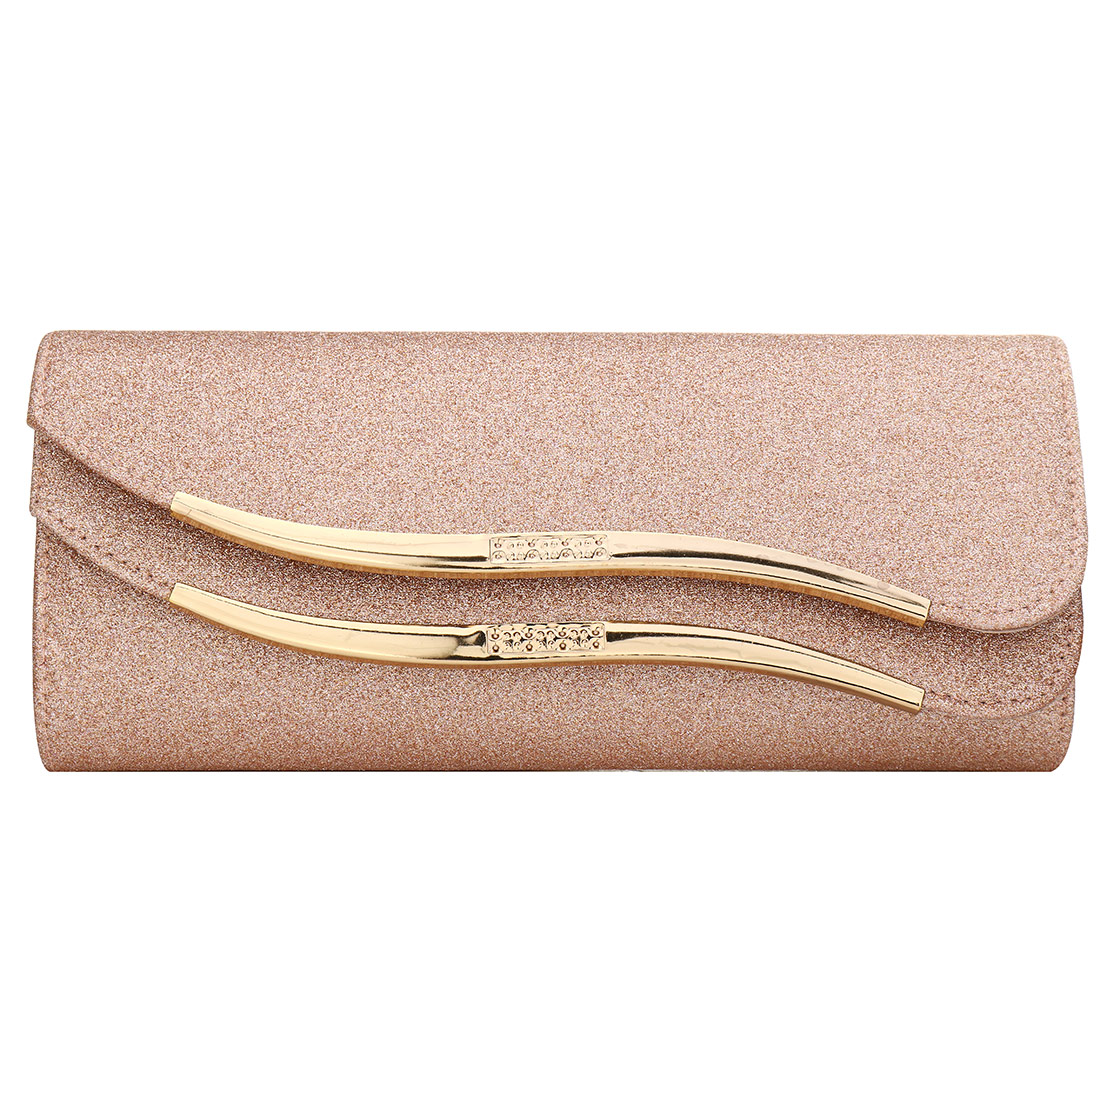 HTB1zrkkXNiH3KVjSZPfq6xBiVXas - New Fashion Sequined Envelope Clutch Women'S Evening Bags Bling Day Clutches Pink Wedding Purse Female Handbag  Banquet Bag